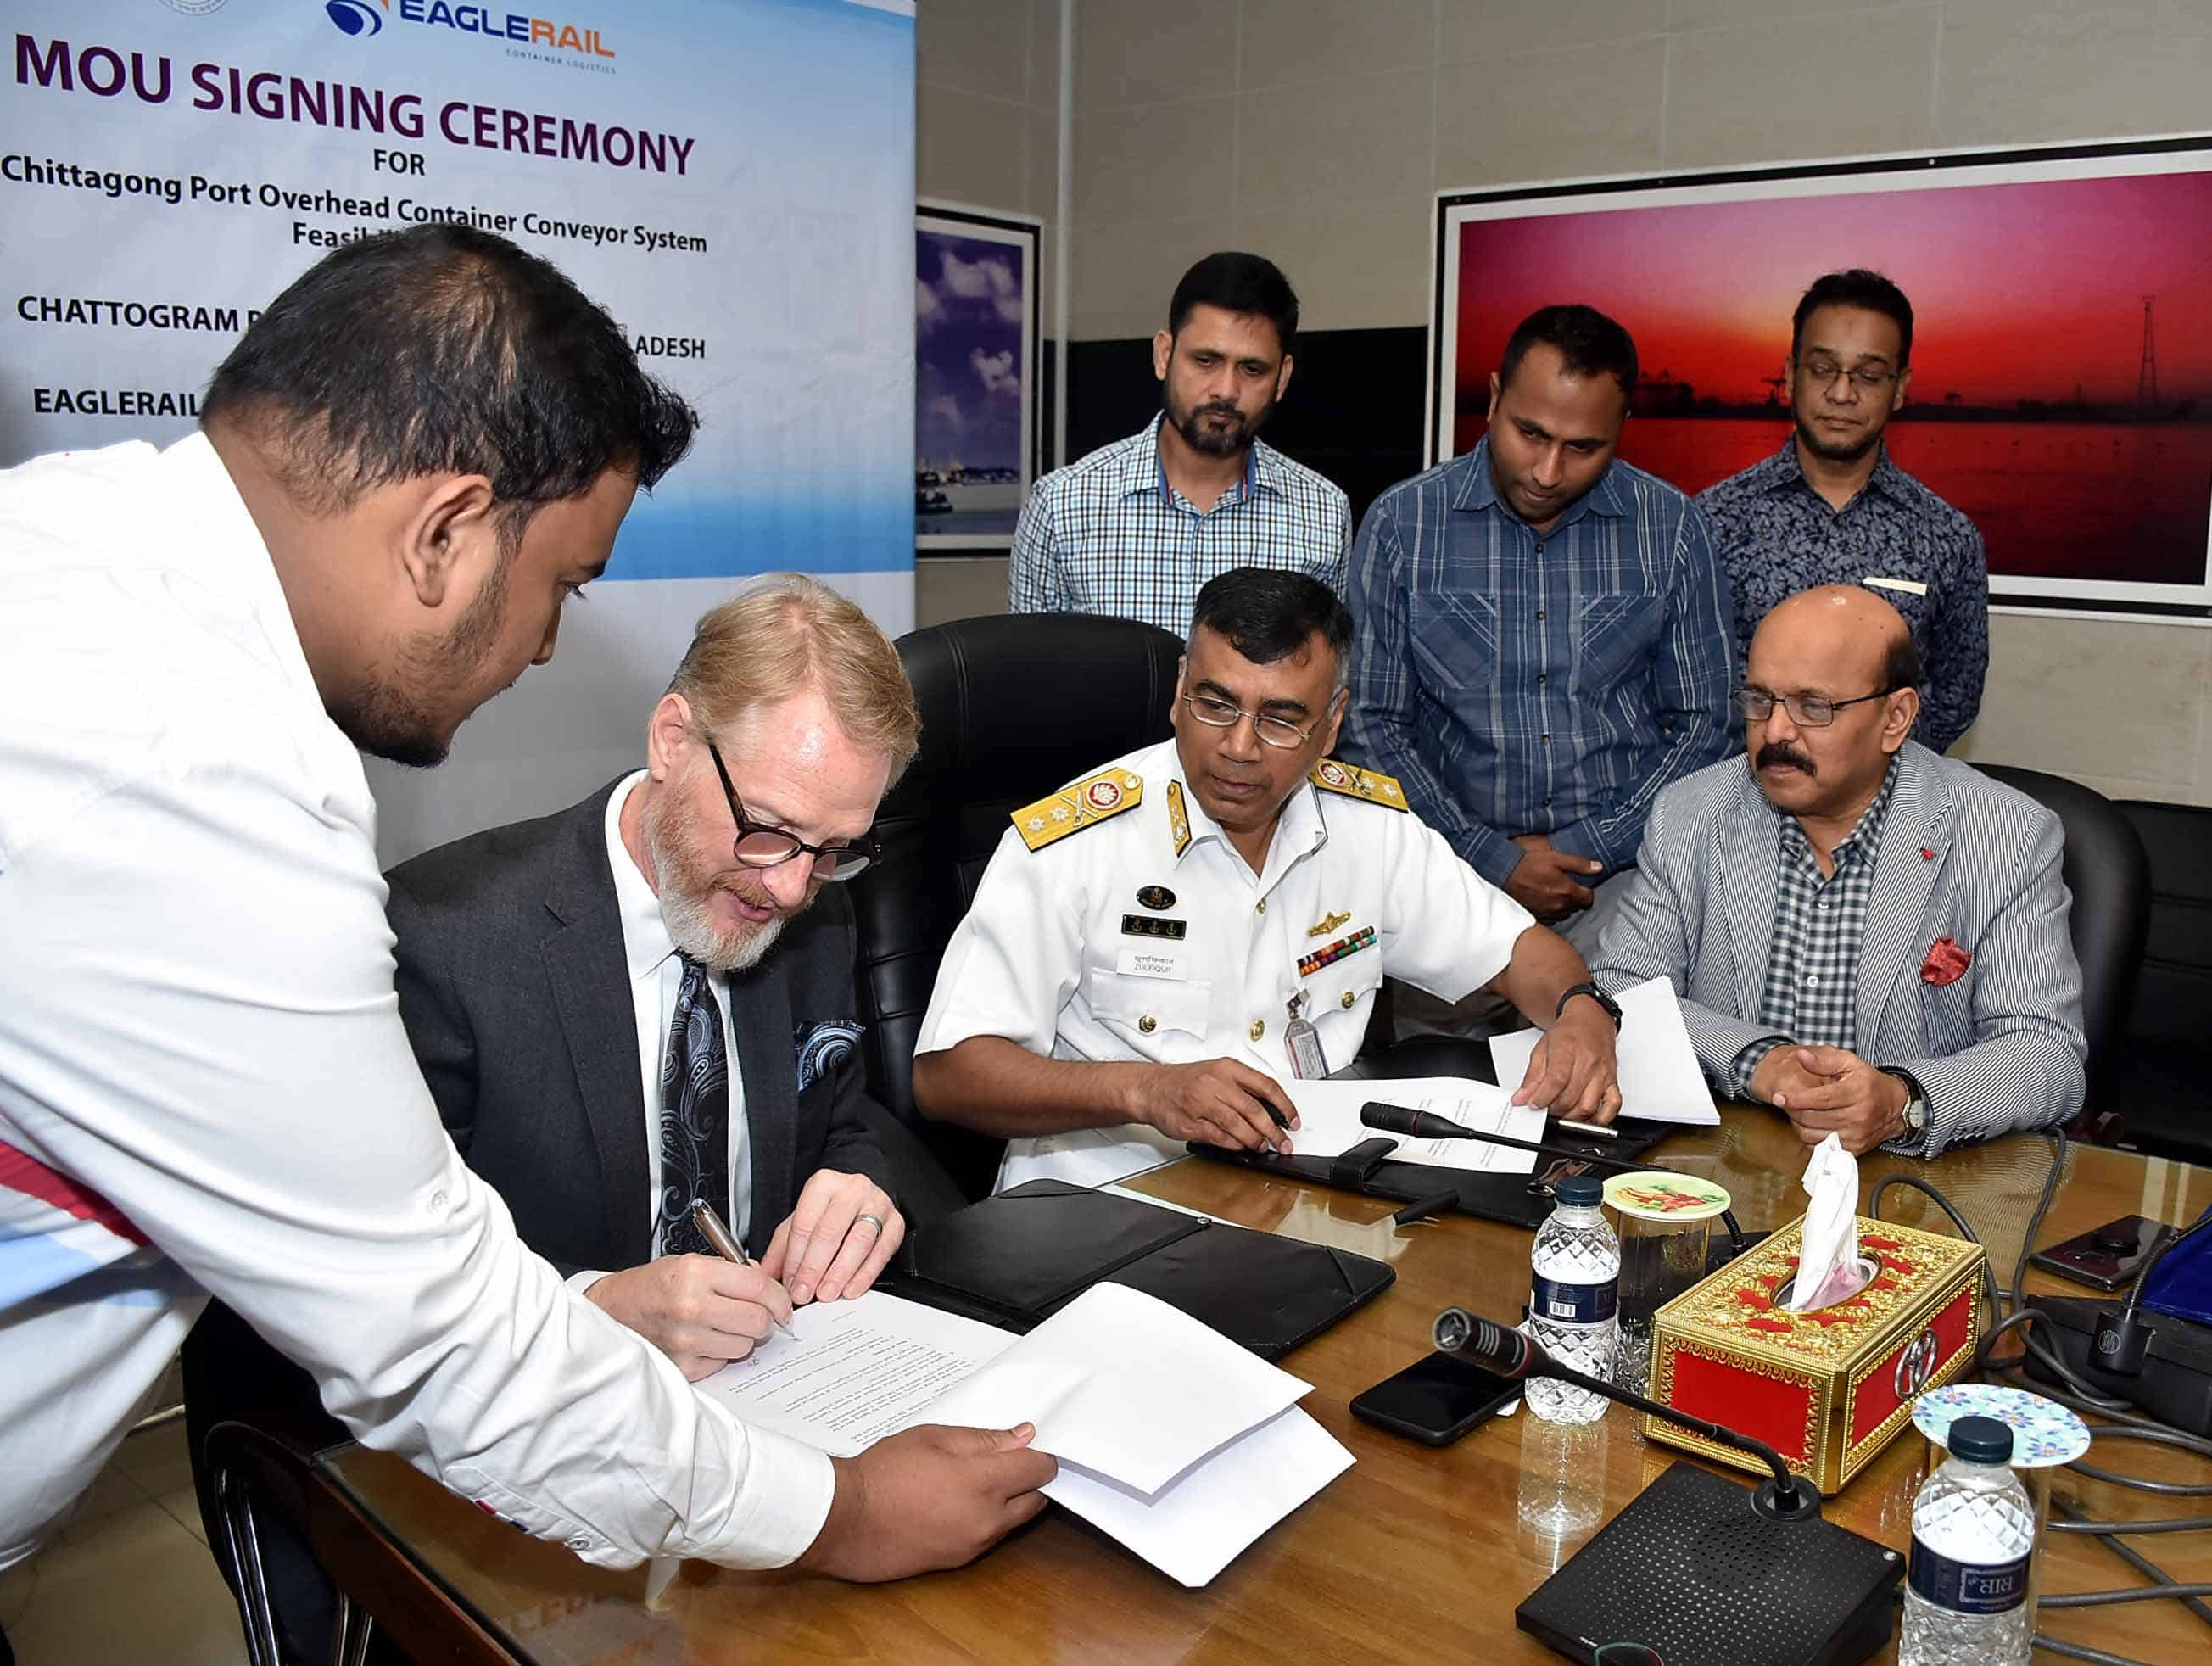 EagleRail signs MOU with Bangladeshi port to address gridlock with electric overhead rail system